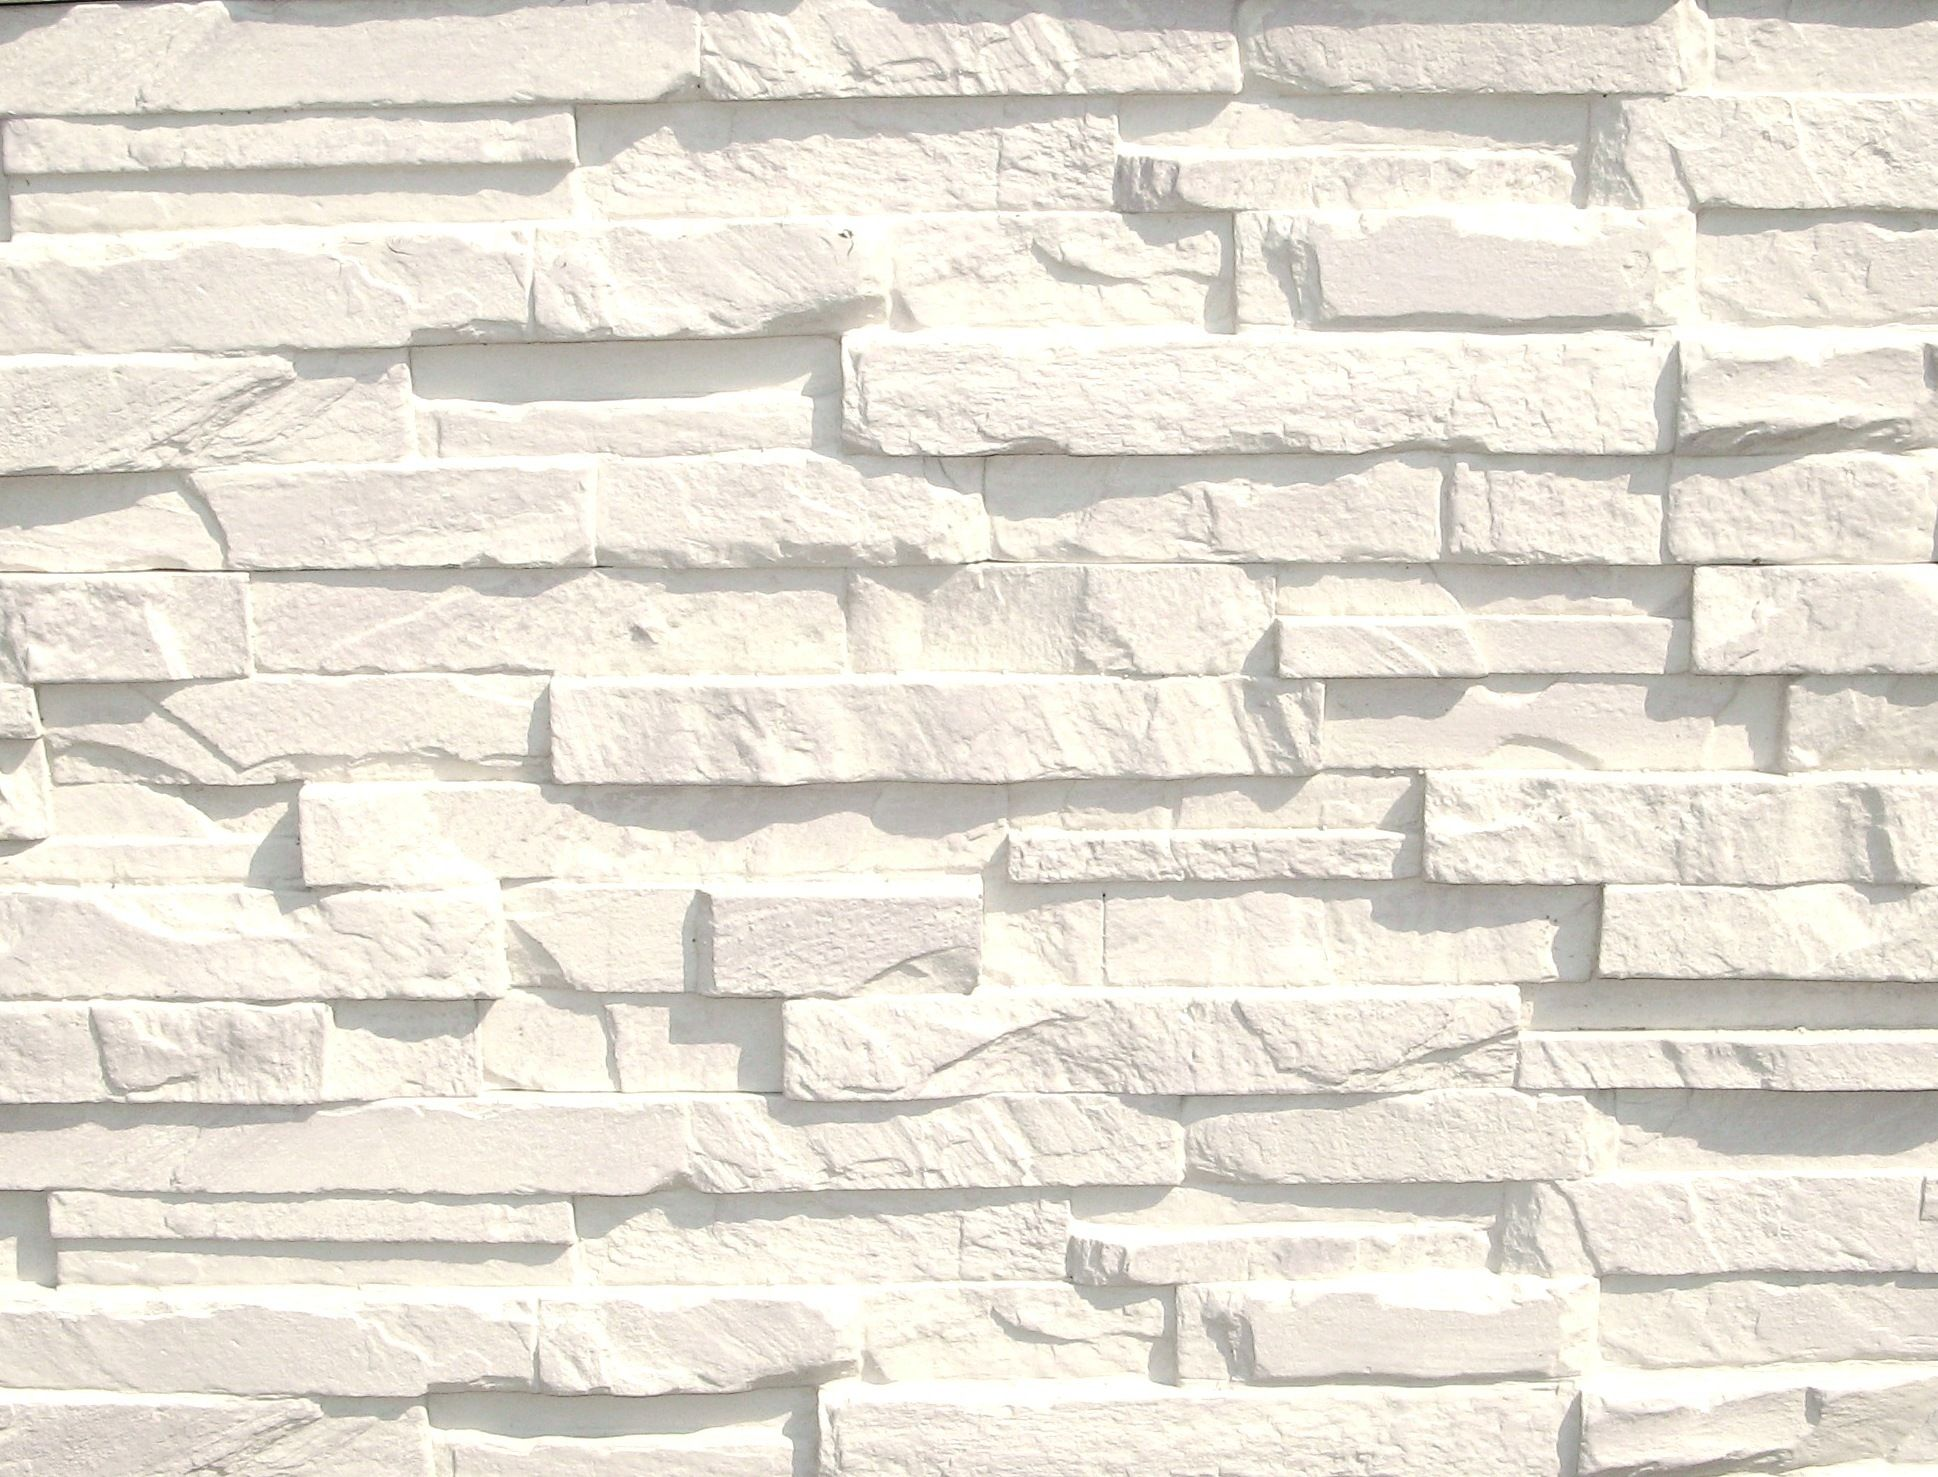 White Brick Wall External Stone Cladding Stone For Fireplace Design Elements Pinterest